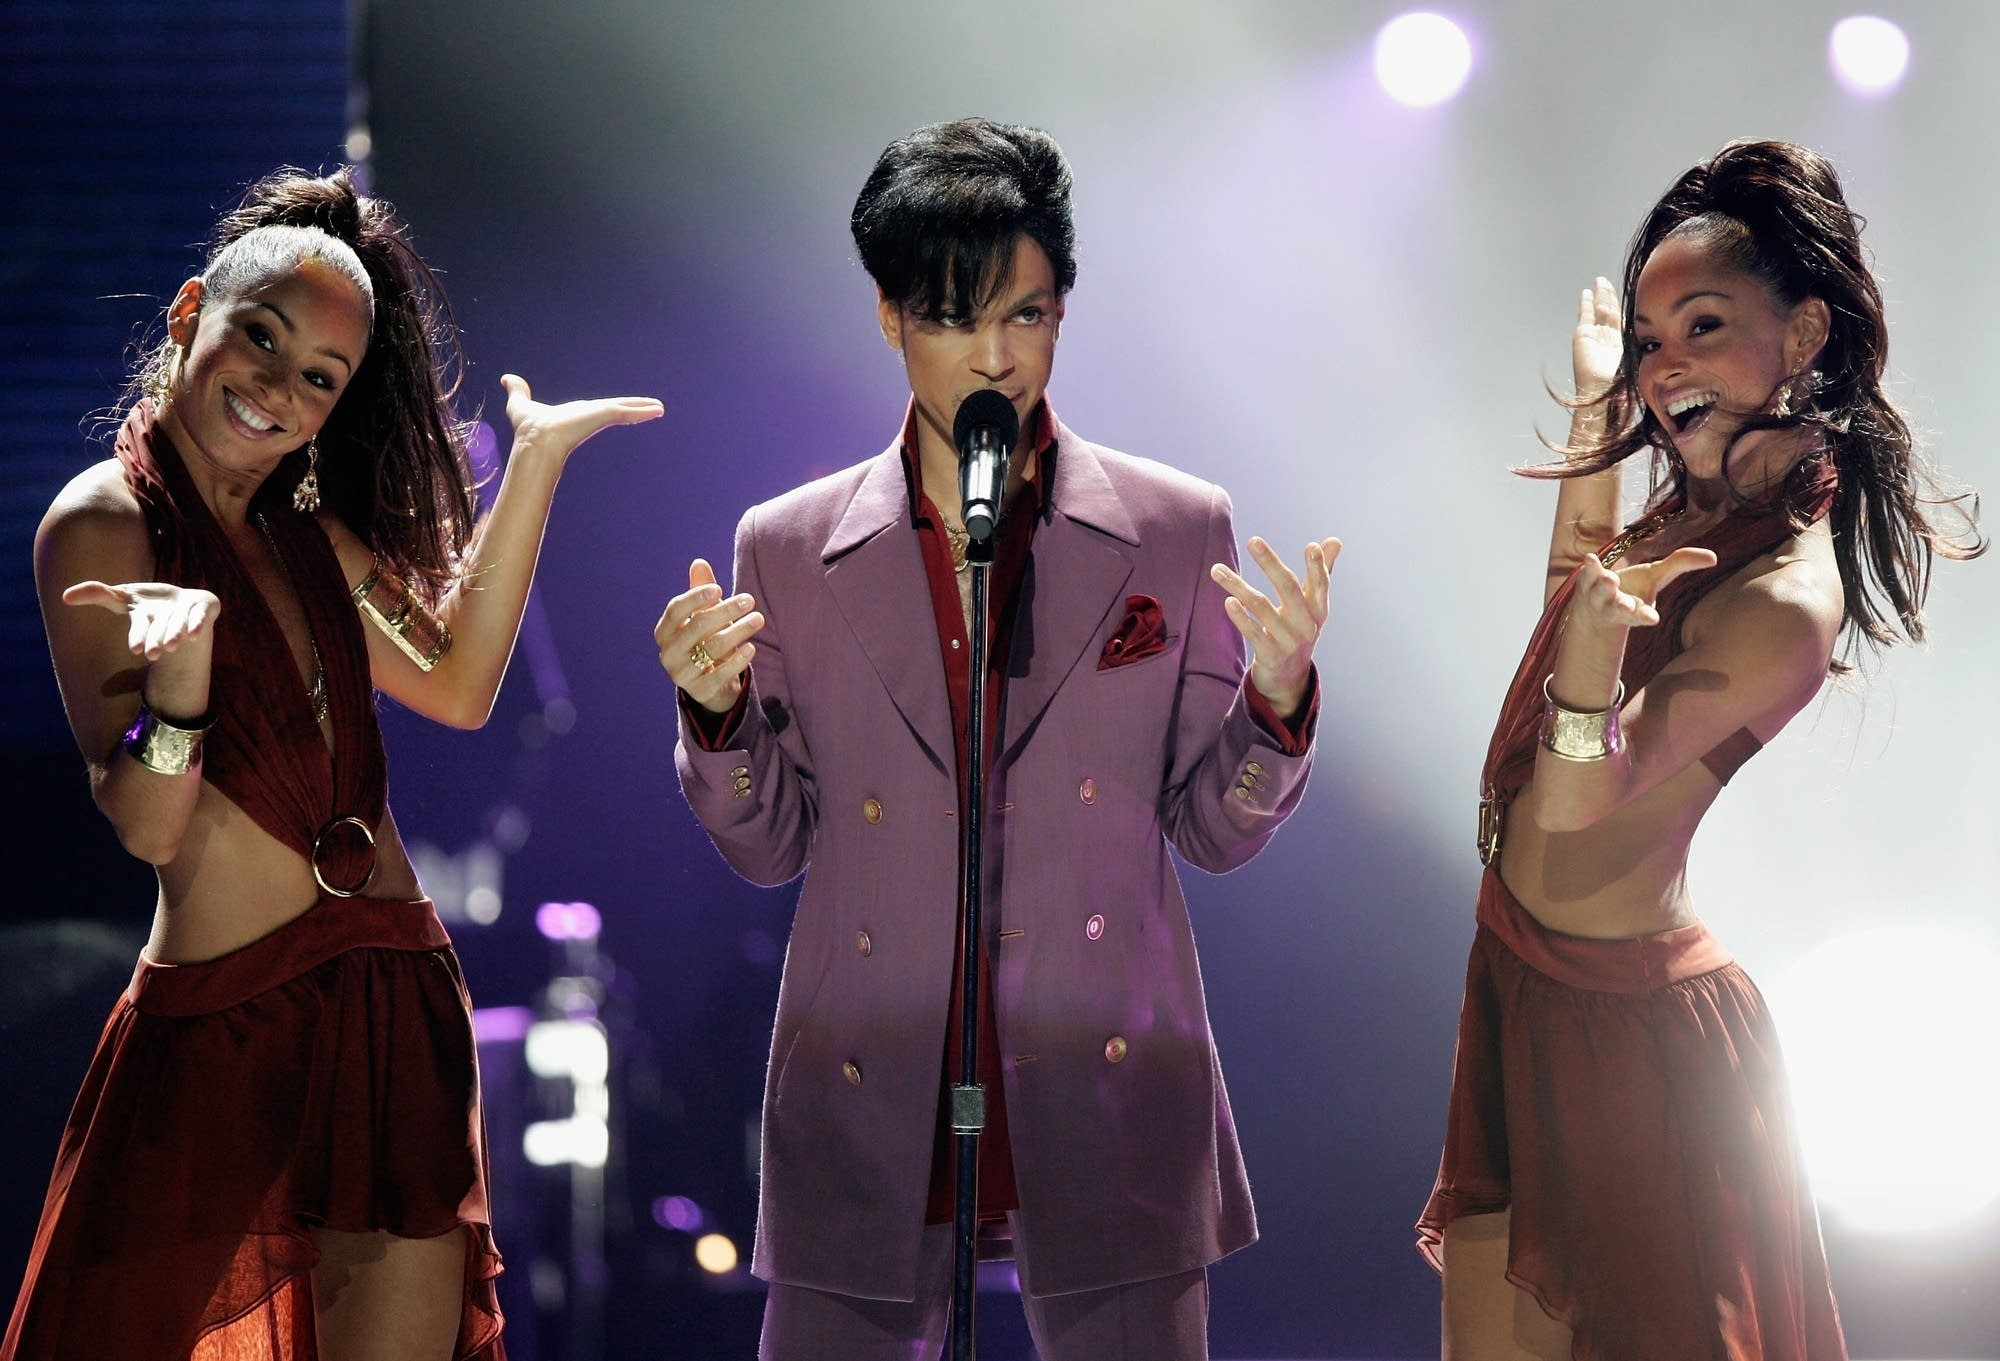 Prince performs on 'American Idol' in 2006.